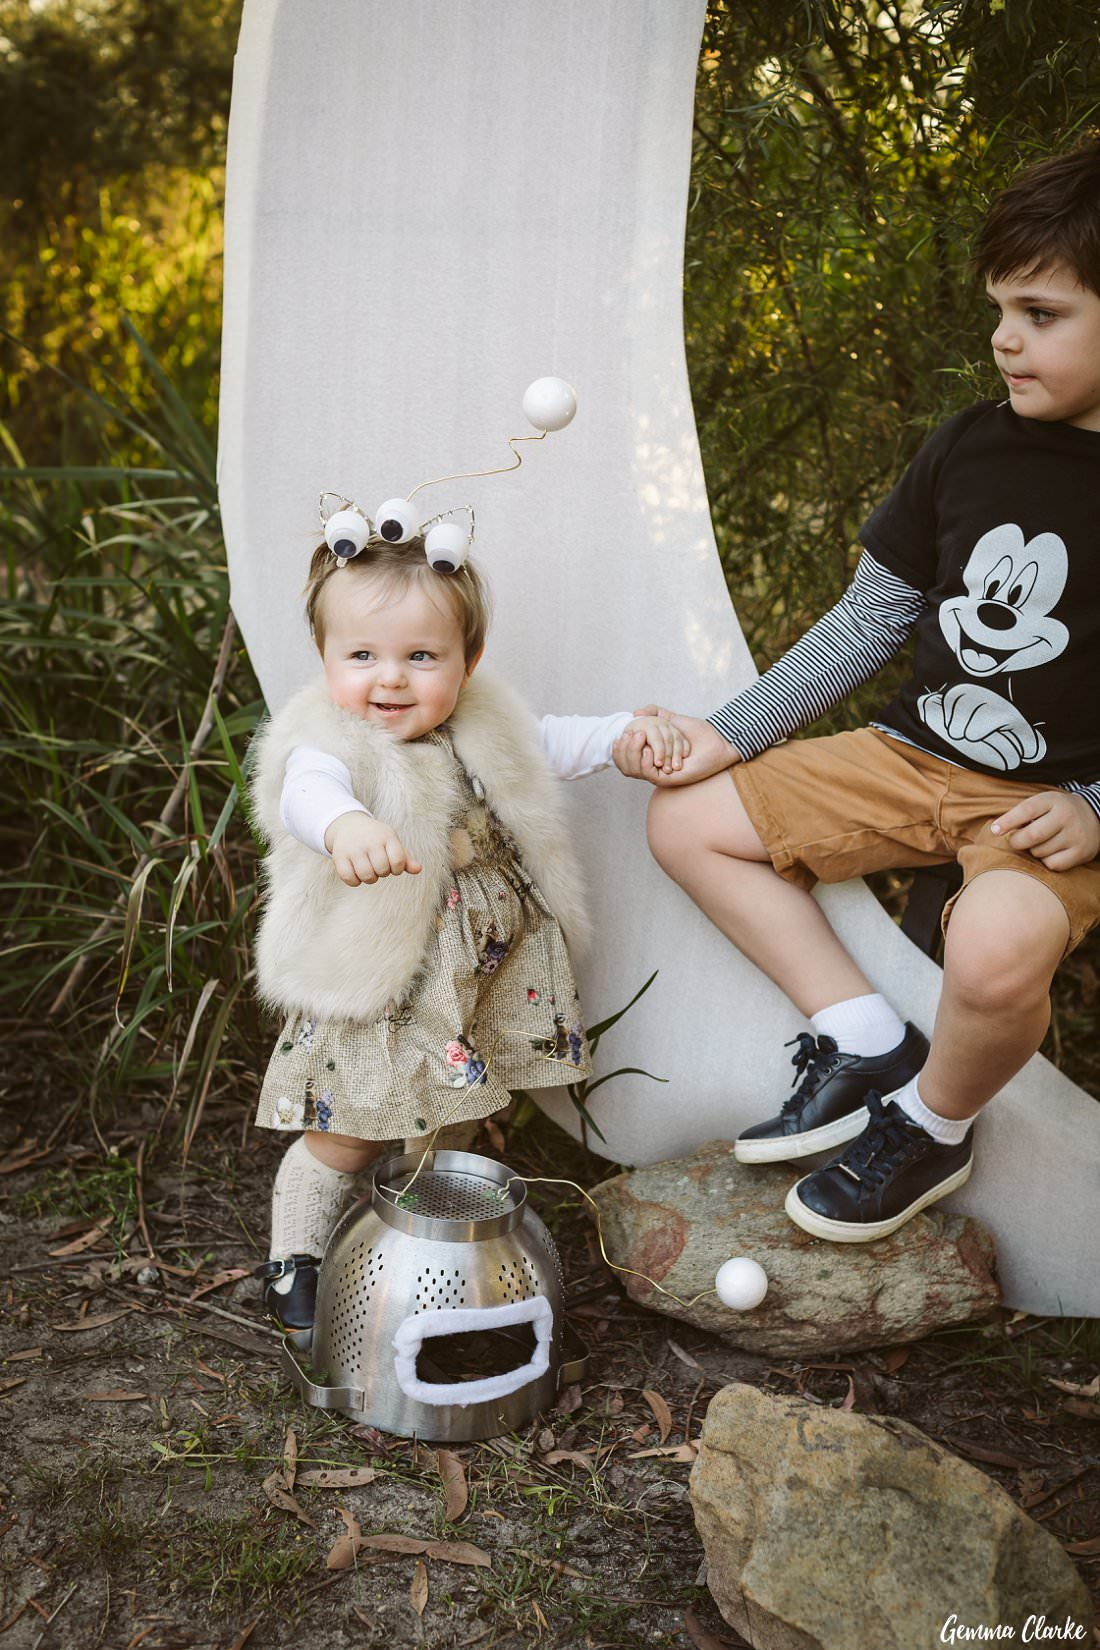 Cute baby alien at this space themed photoshoot